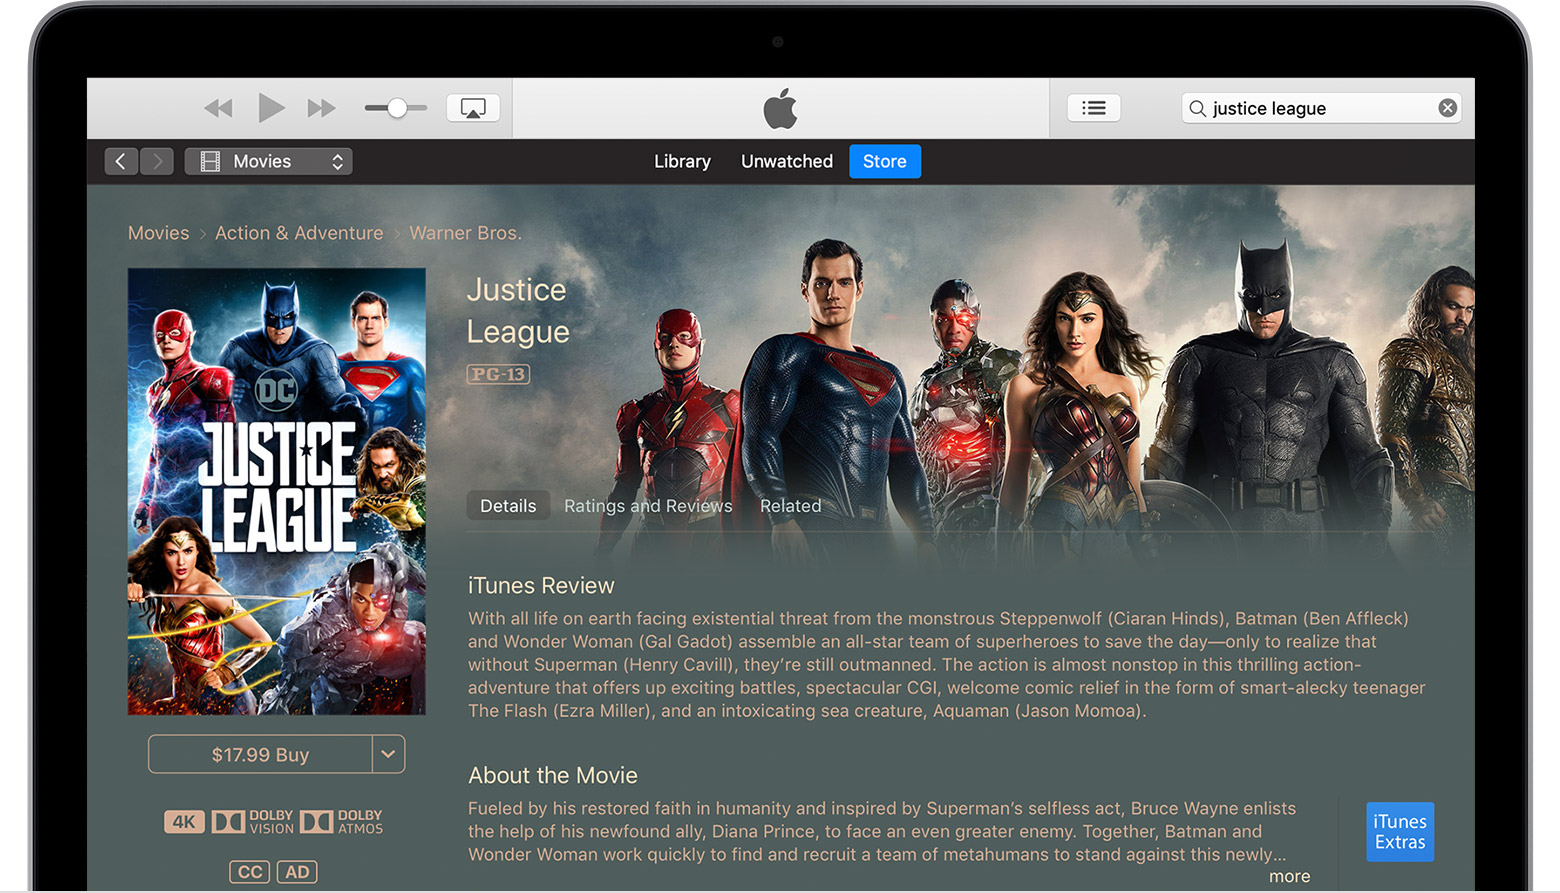 Mac affichant la page du film Justice League